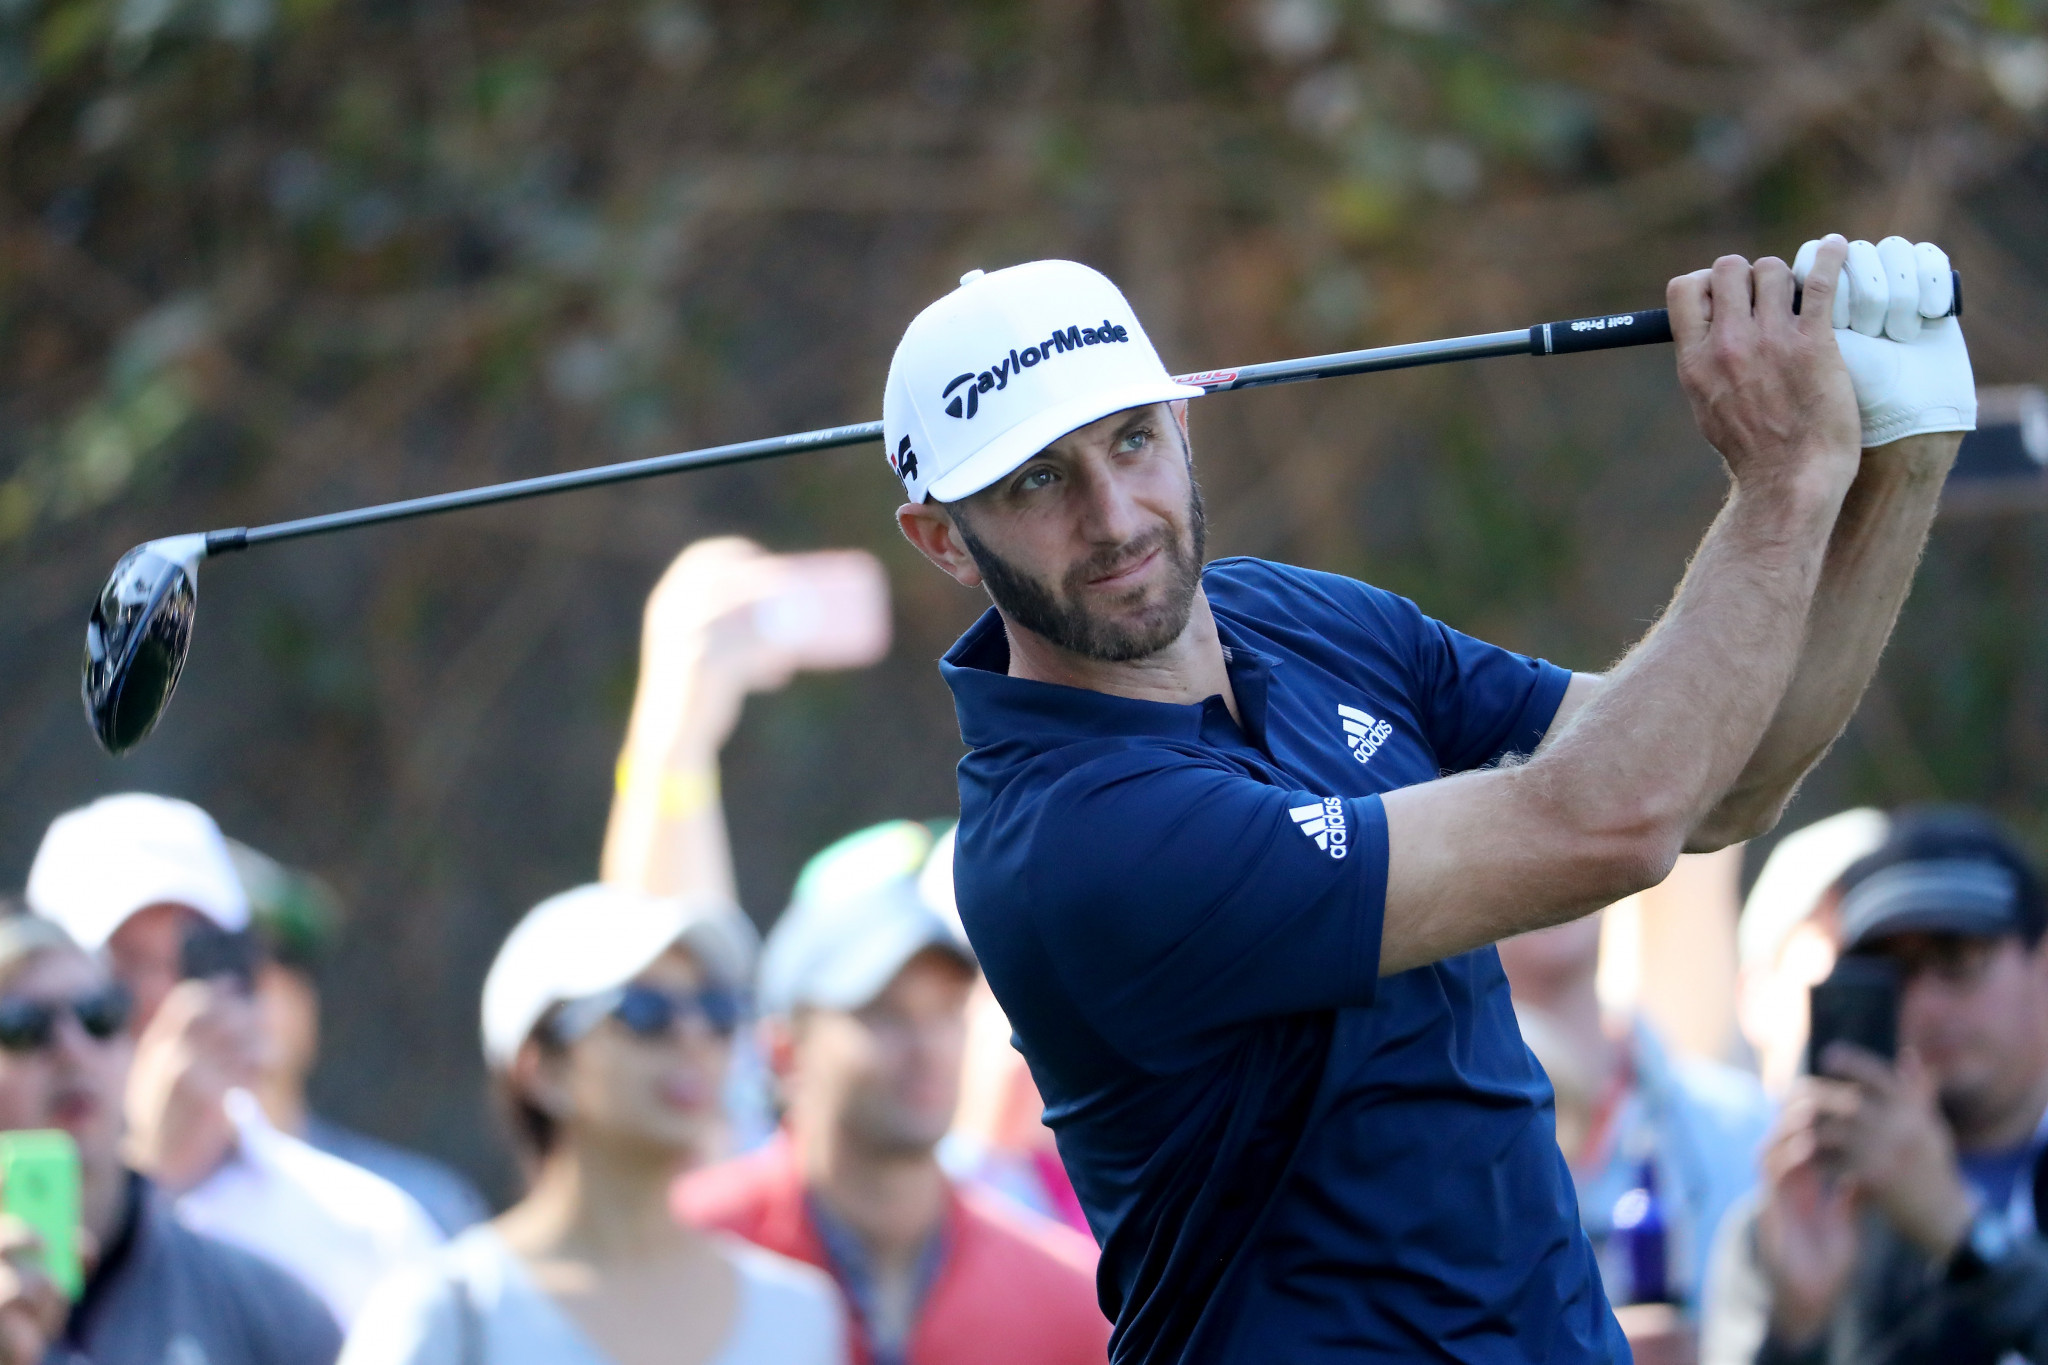 Johnson to defend World Golf Championship title against strong field in Mexico